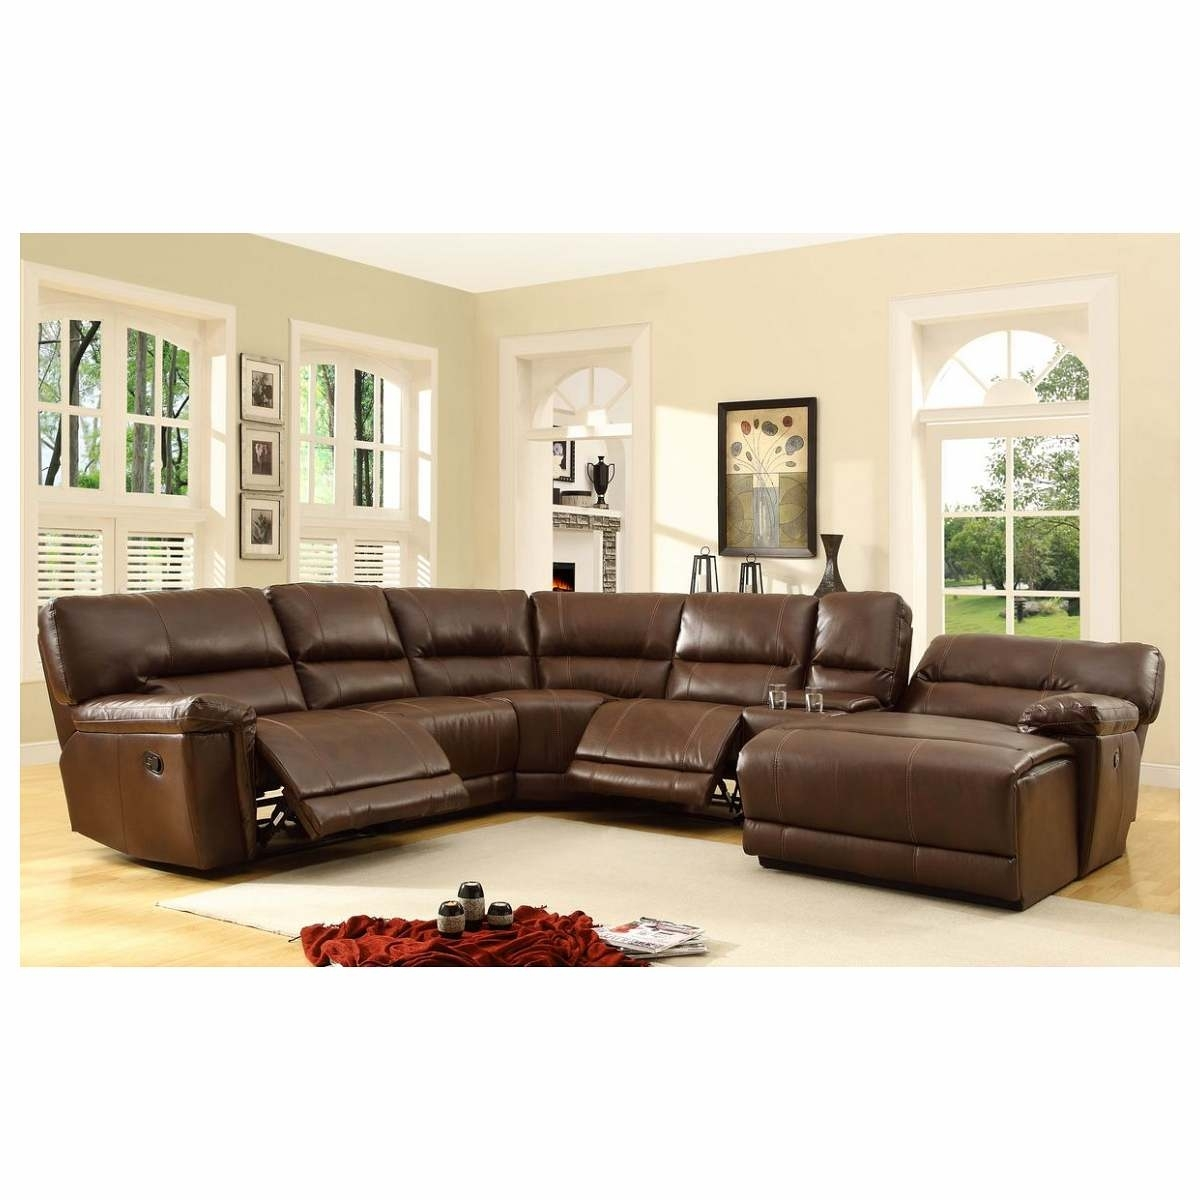 6 Pc Blythe Collection Brown Bonded Leather Match Upholstered With Tampa Fl Sectional Sofas (View 8 of 10)